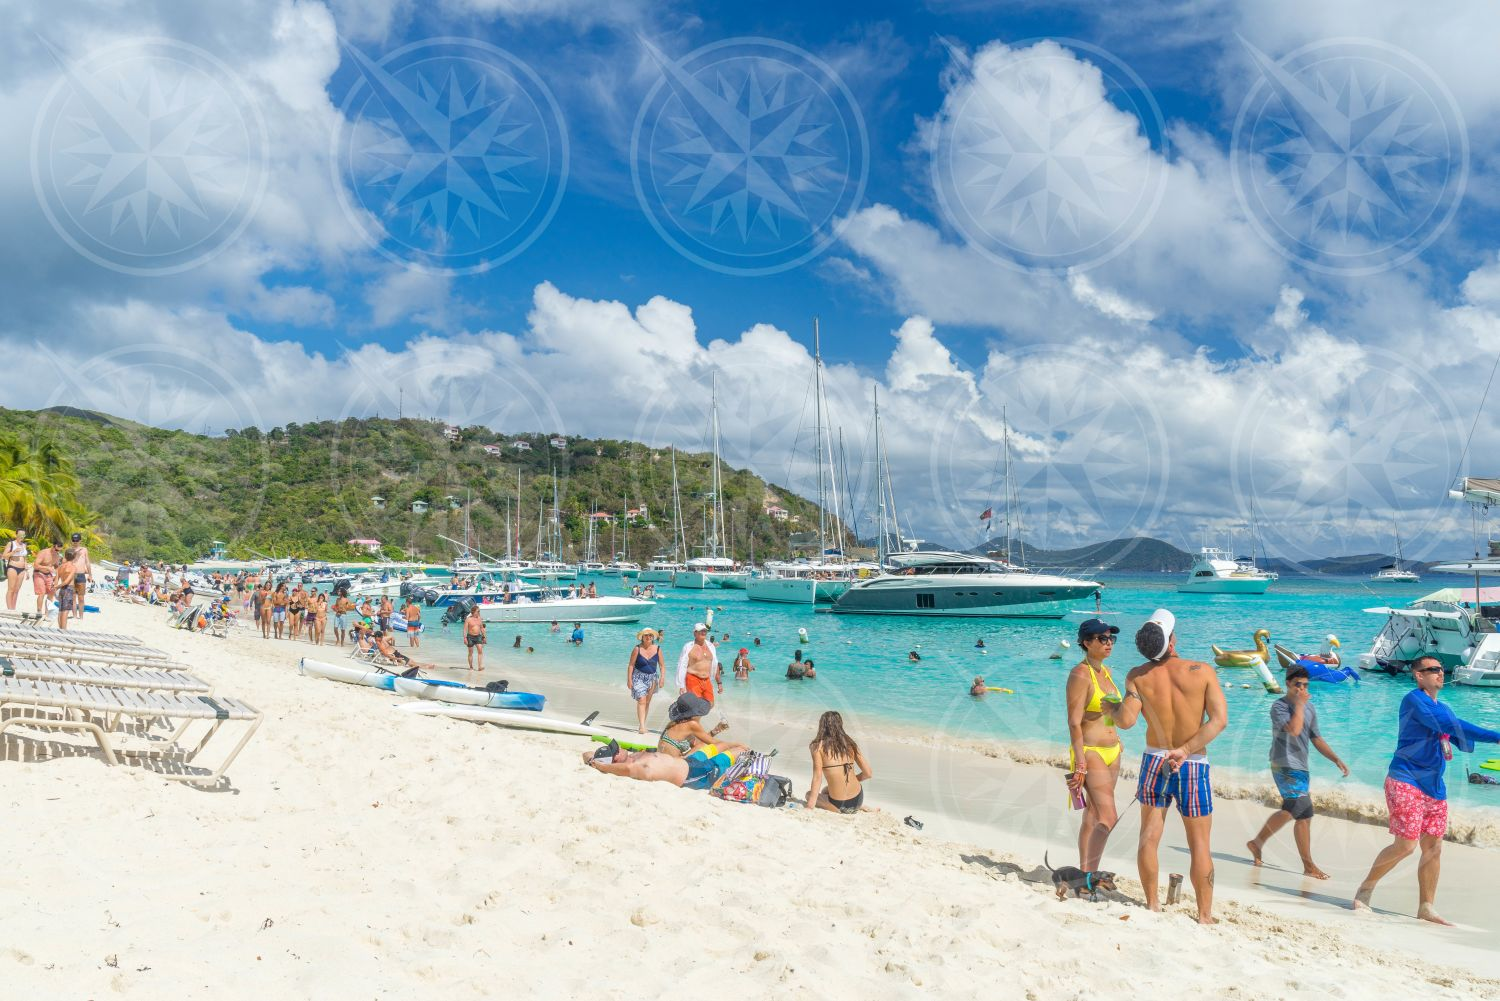 People on White Bay, Jost Van Dyke, British Virgin Islands